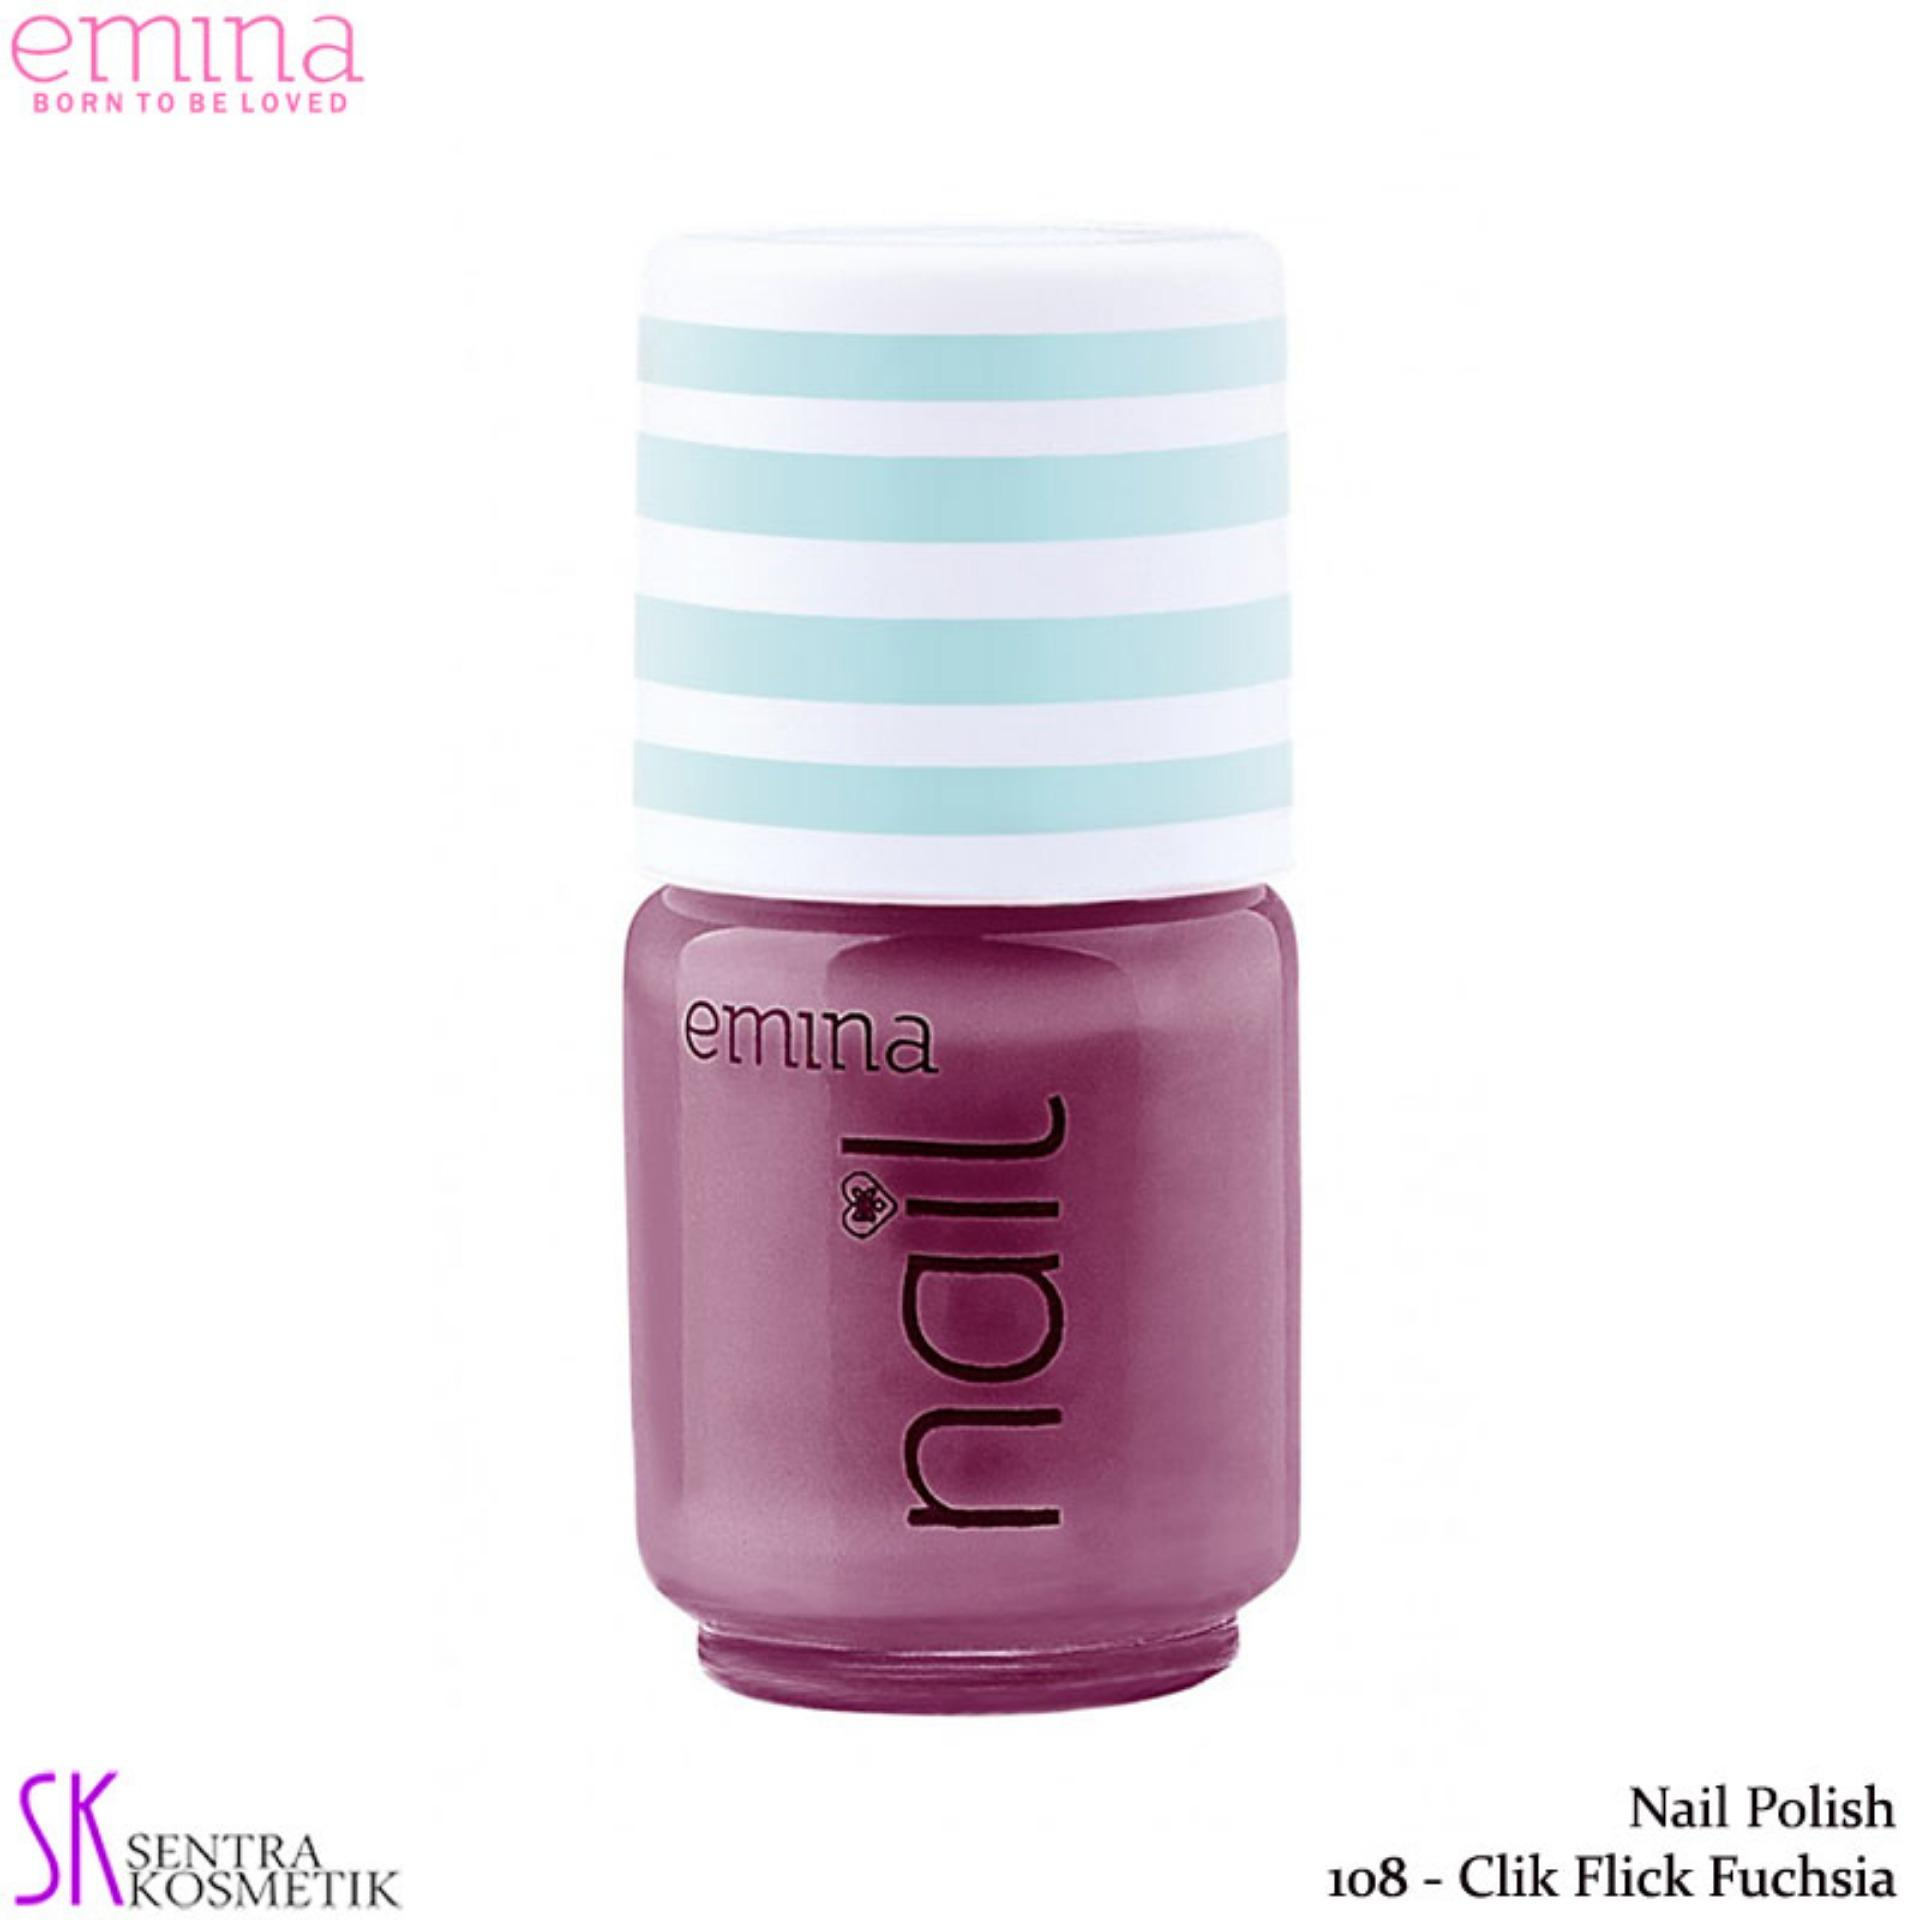 Emina Nail Polish Water Base 108 Chick Flick Fuchsia - 5 Ml By Sentra Kosmetik.